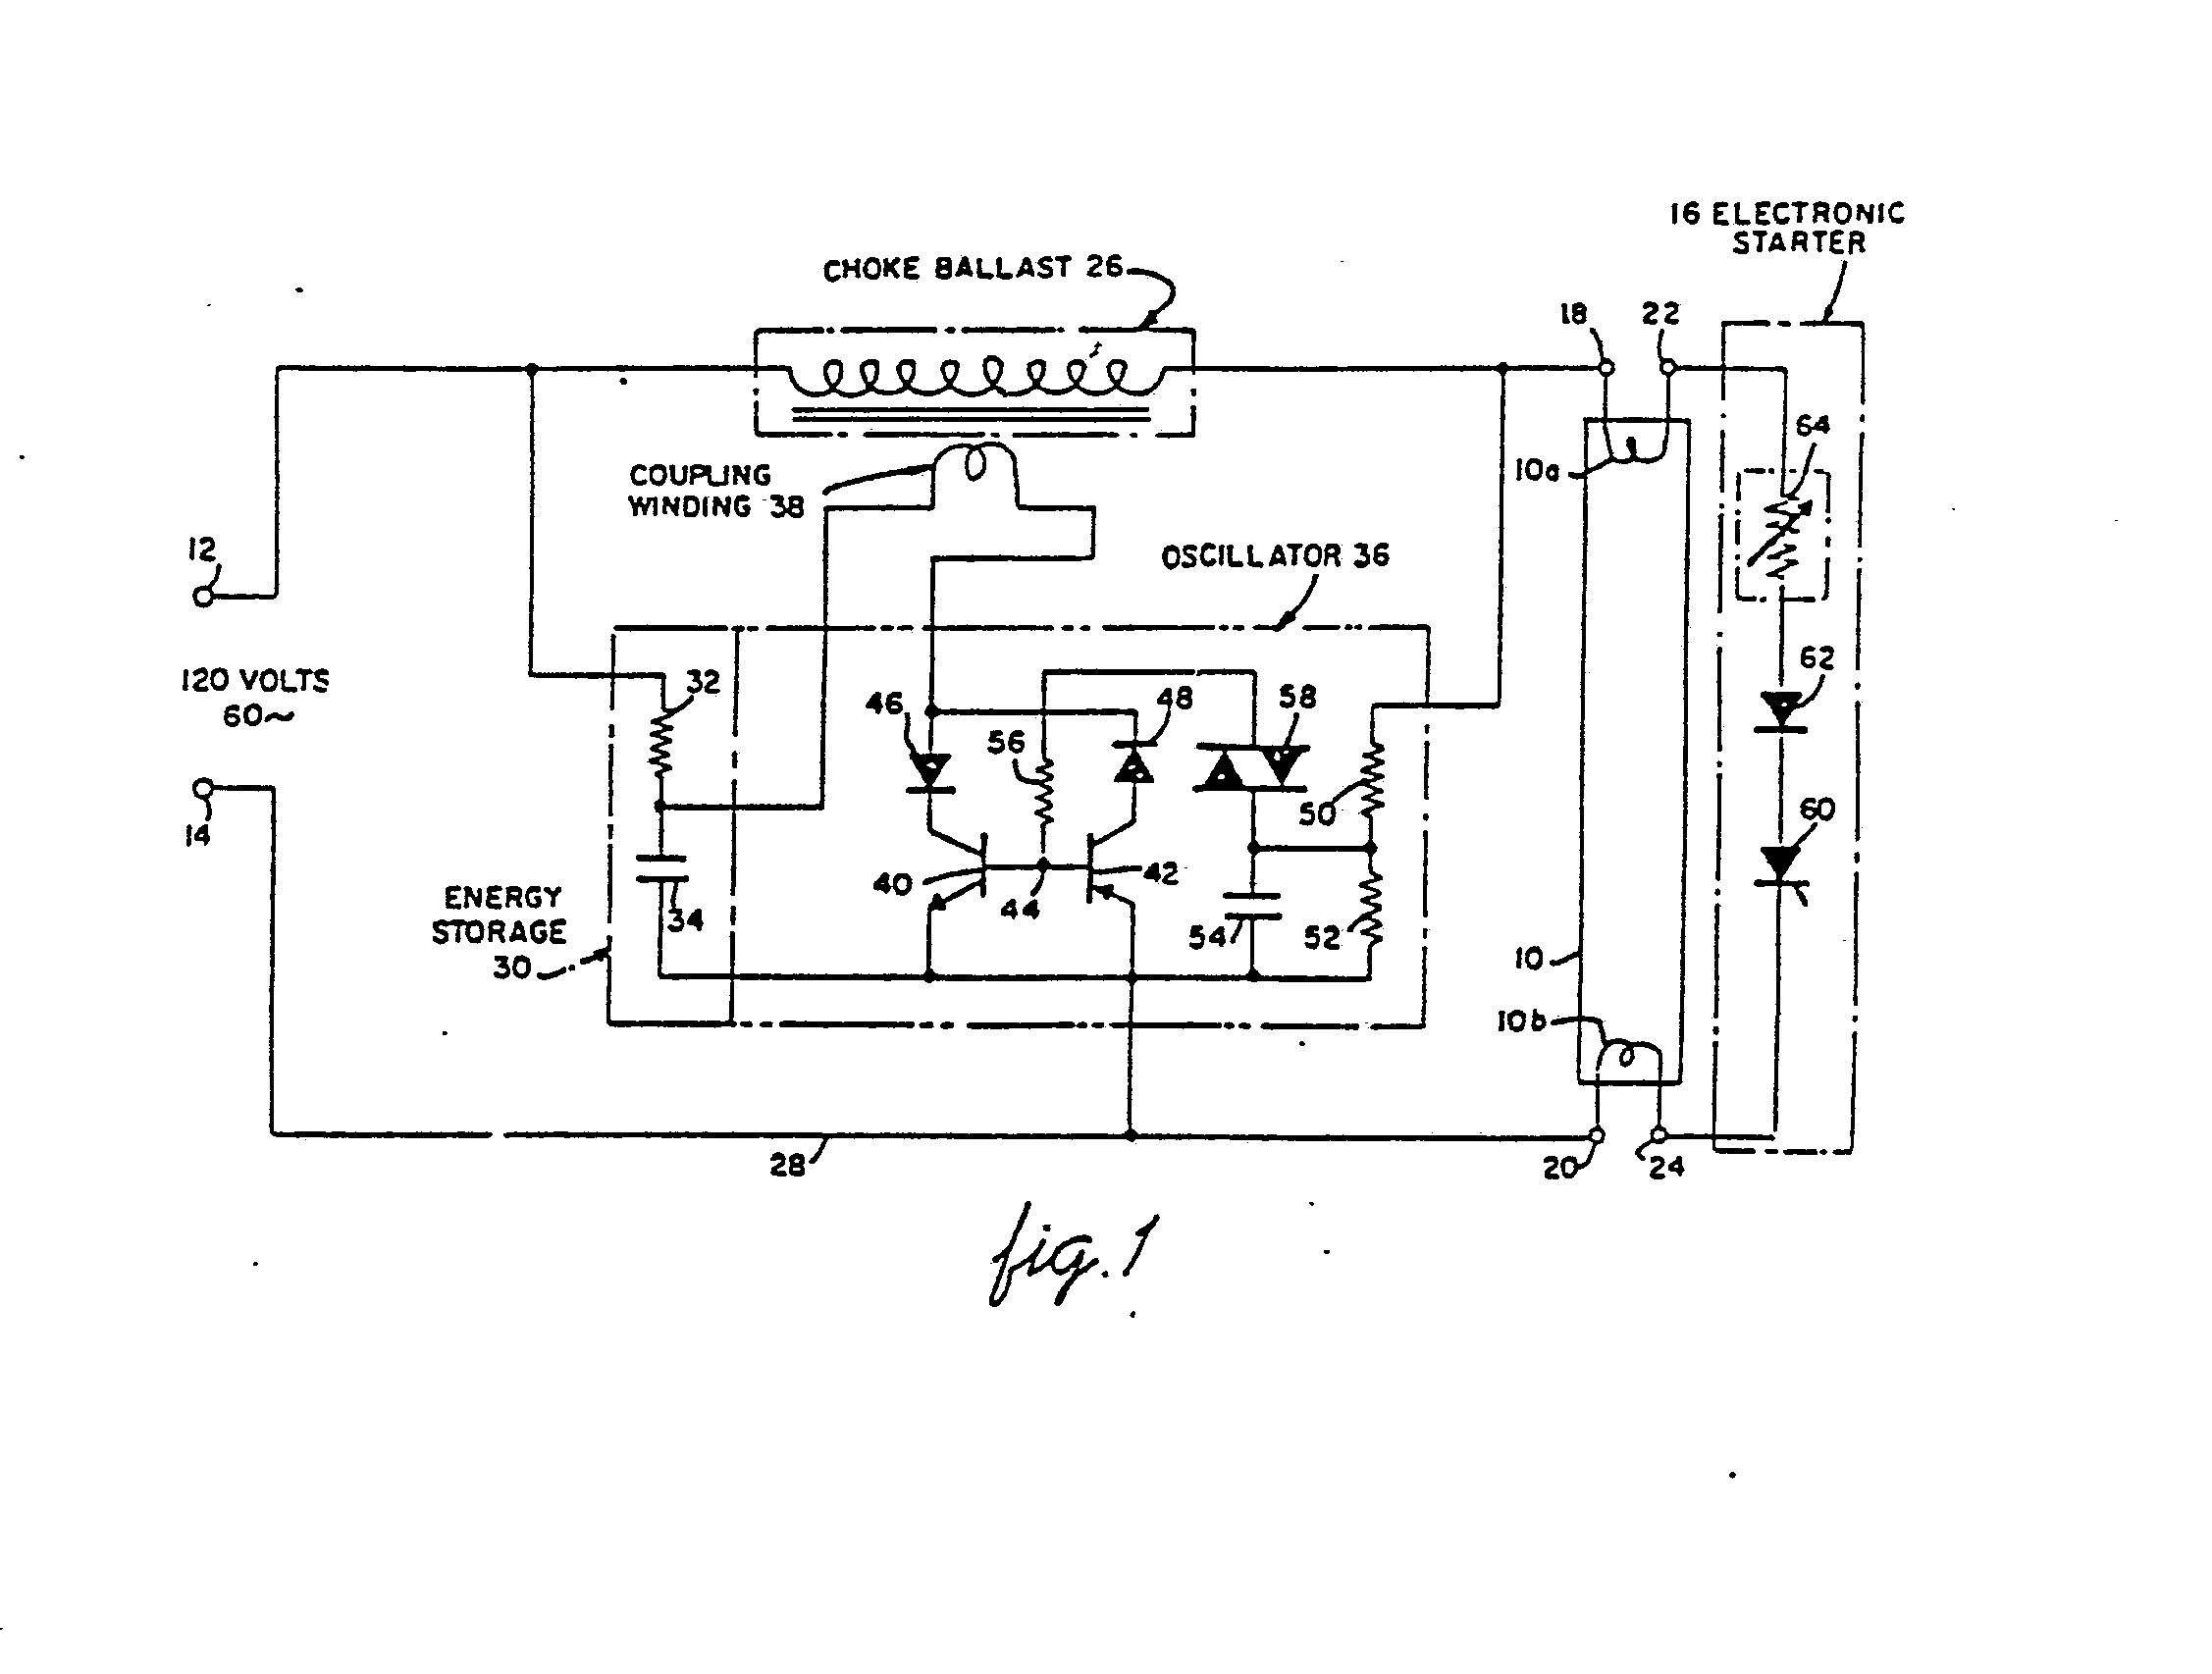 Low Voltage Fluorescent Lamp Operating Circuit Patent 0031933 Basic Oscillatory Circuits Electronic And Diagram Combination With An Starter 16 Comprising A Ptc Resistor 64 Silicon Diode 62 Scr 60 Series Connected Across The